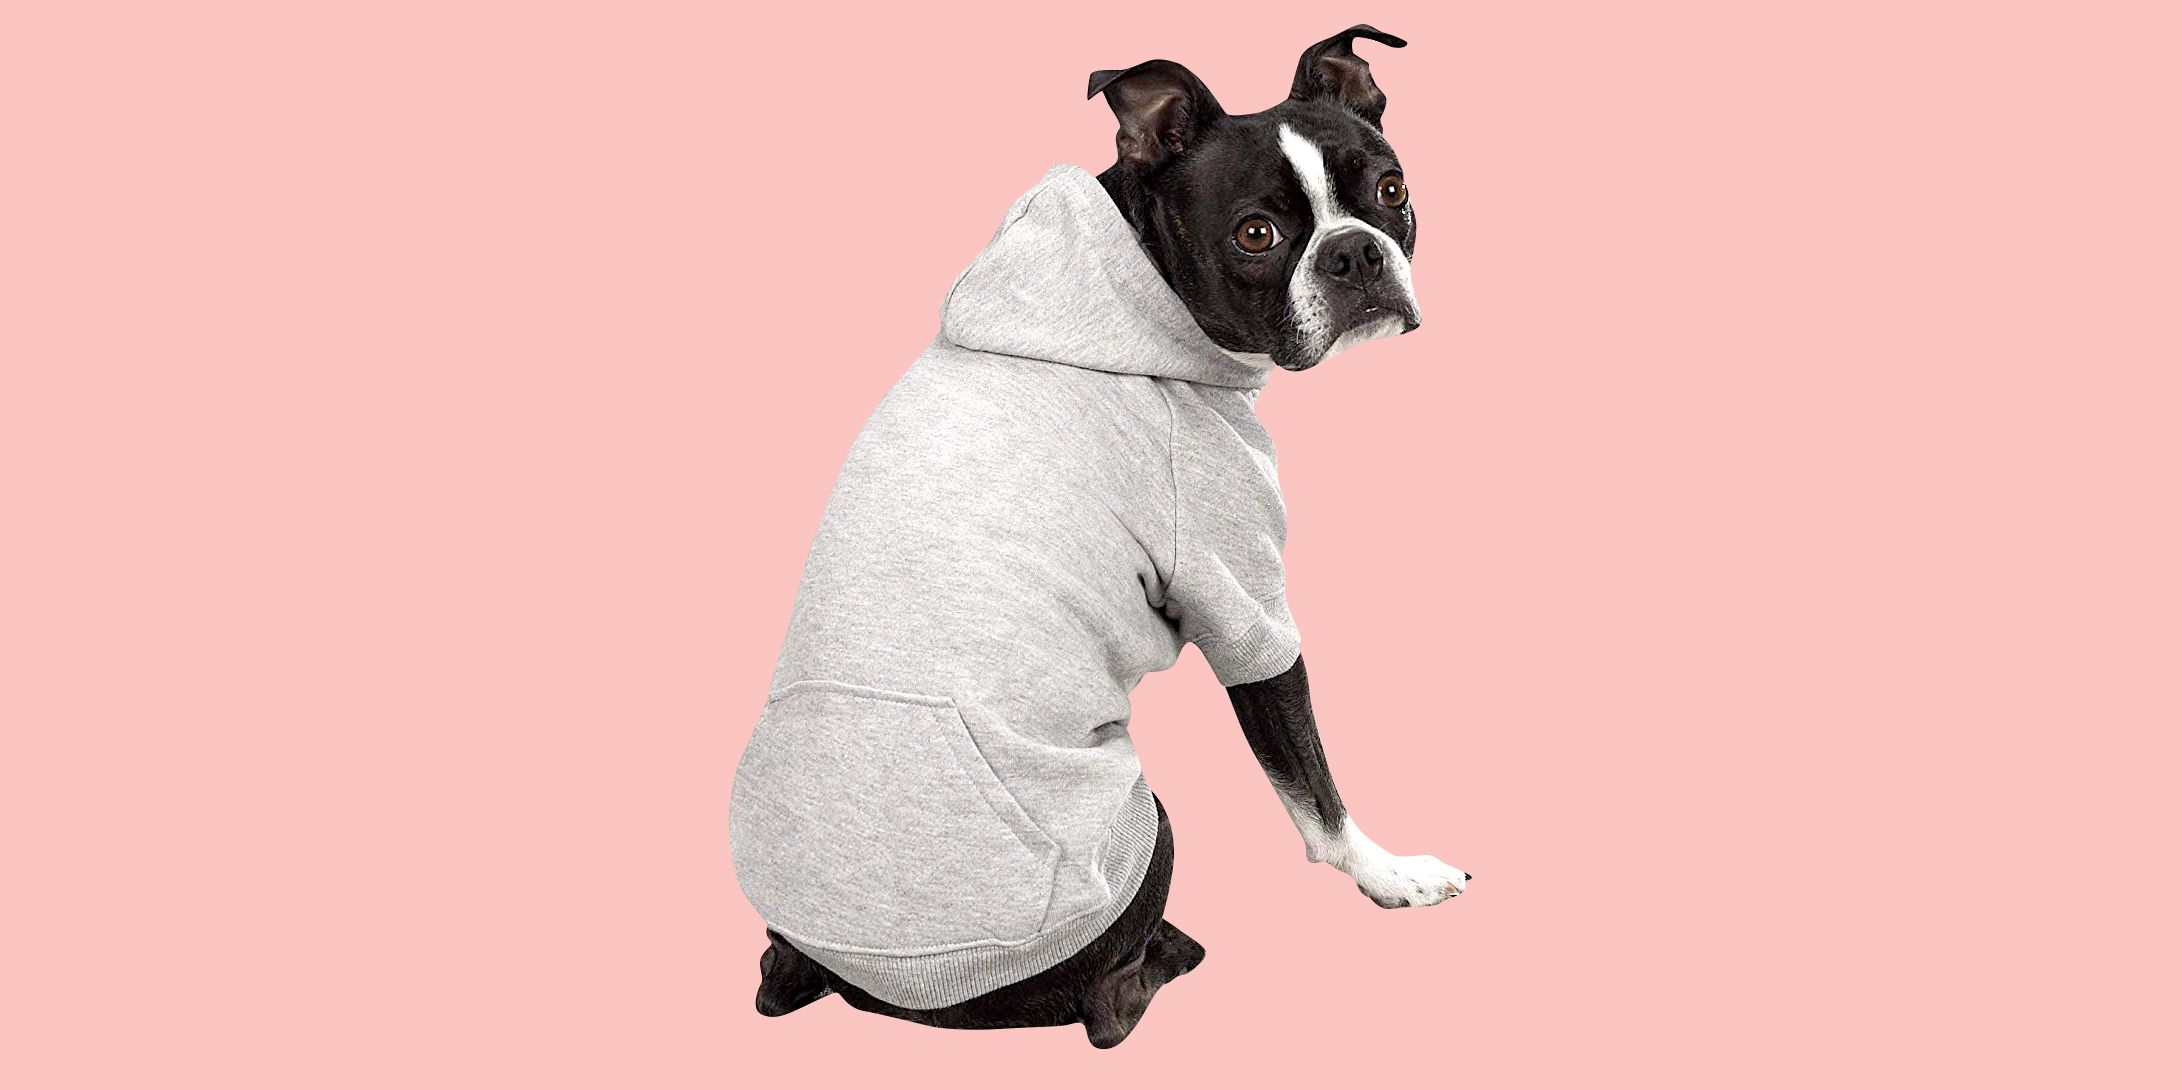 This Top-Rated Dog Hoodie From Amazon Has Over 1,000 Five-Star Reviews